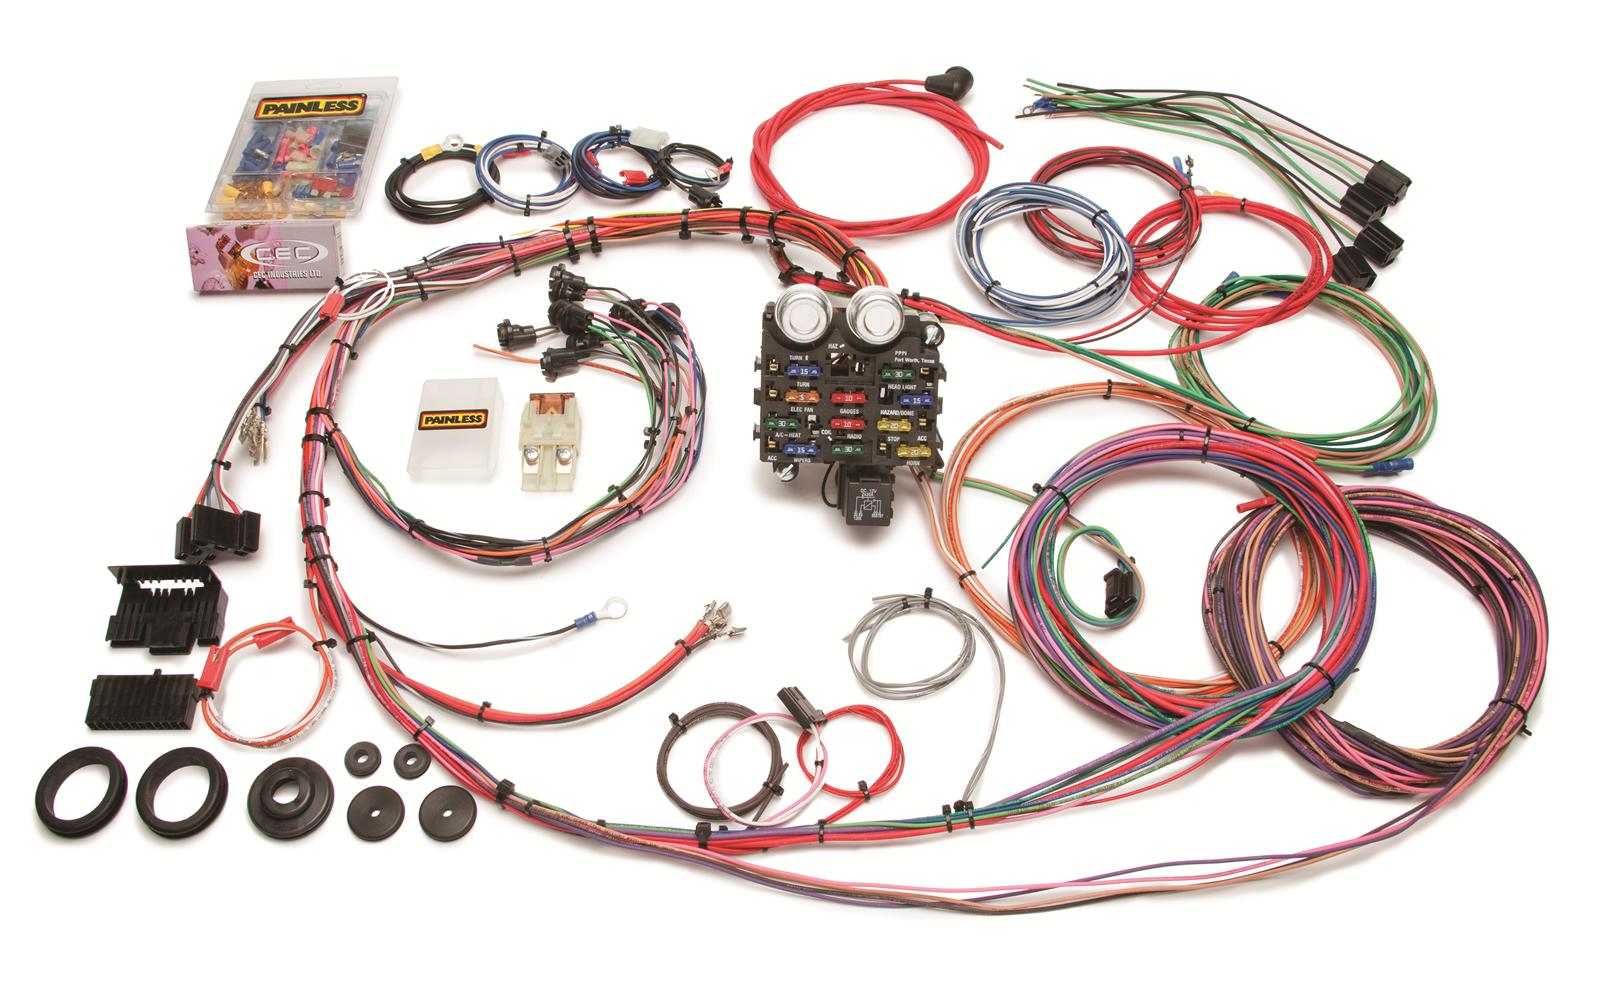 Painless Performance 19-Circuit GMC/Chevy Truck Harnesses 10112 - Free  Shipping on Orders Over $49 at Summit Racing